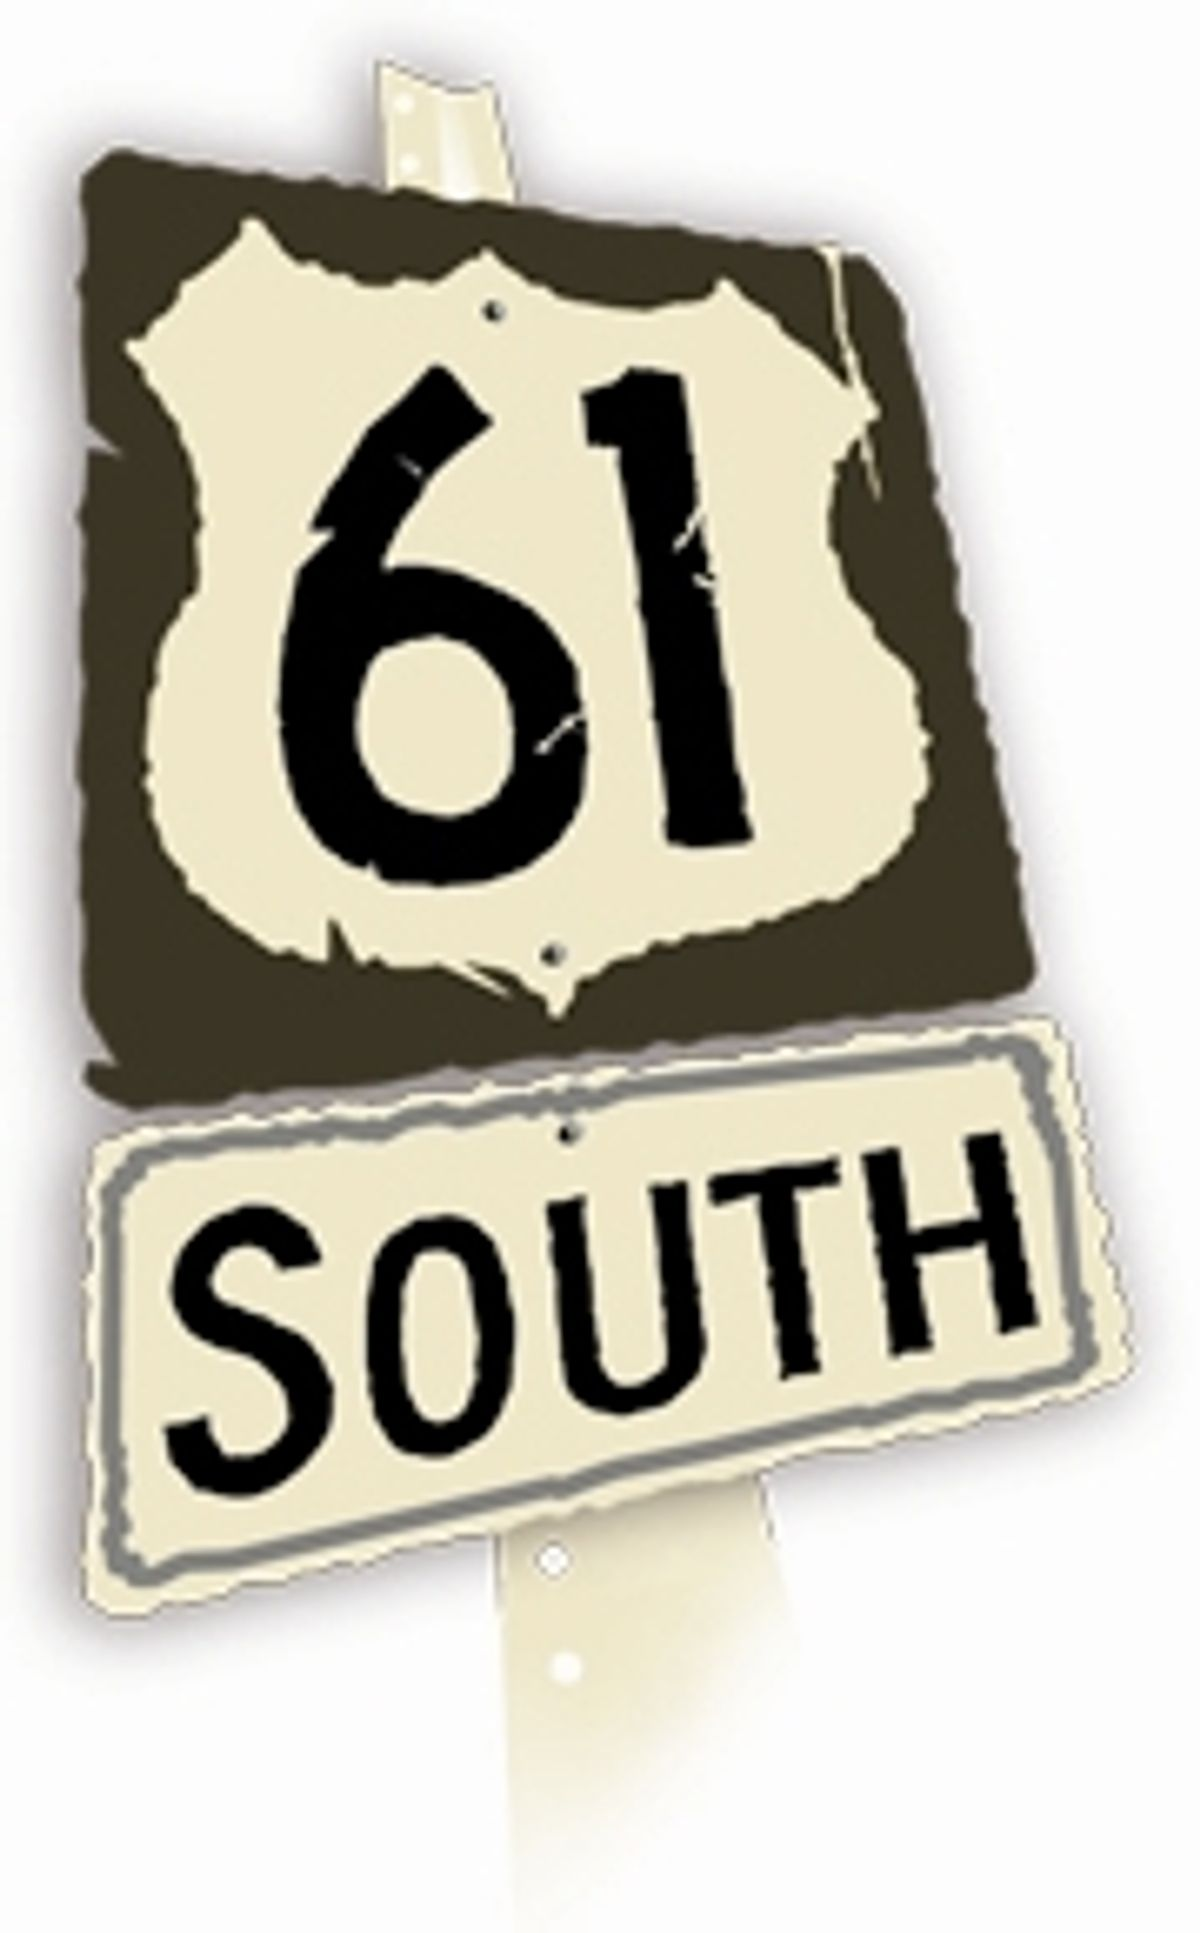 St. Blues releases 61 South